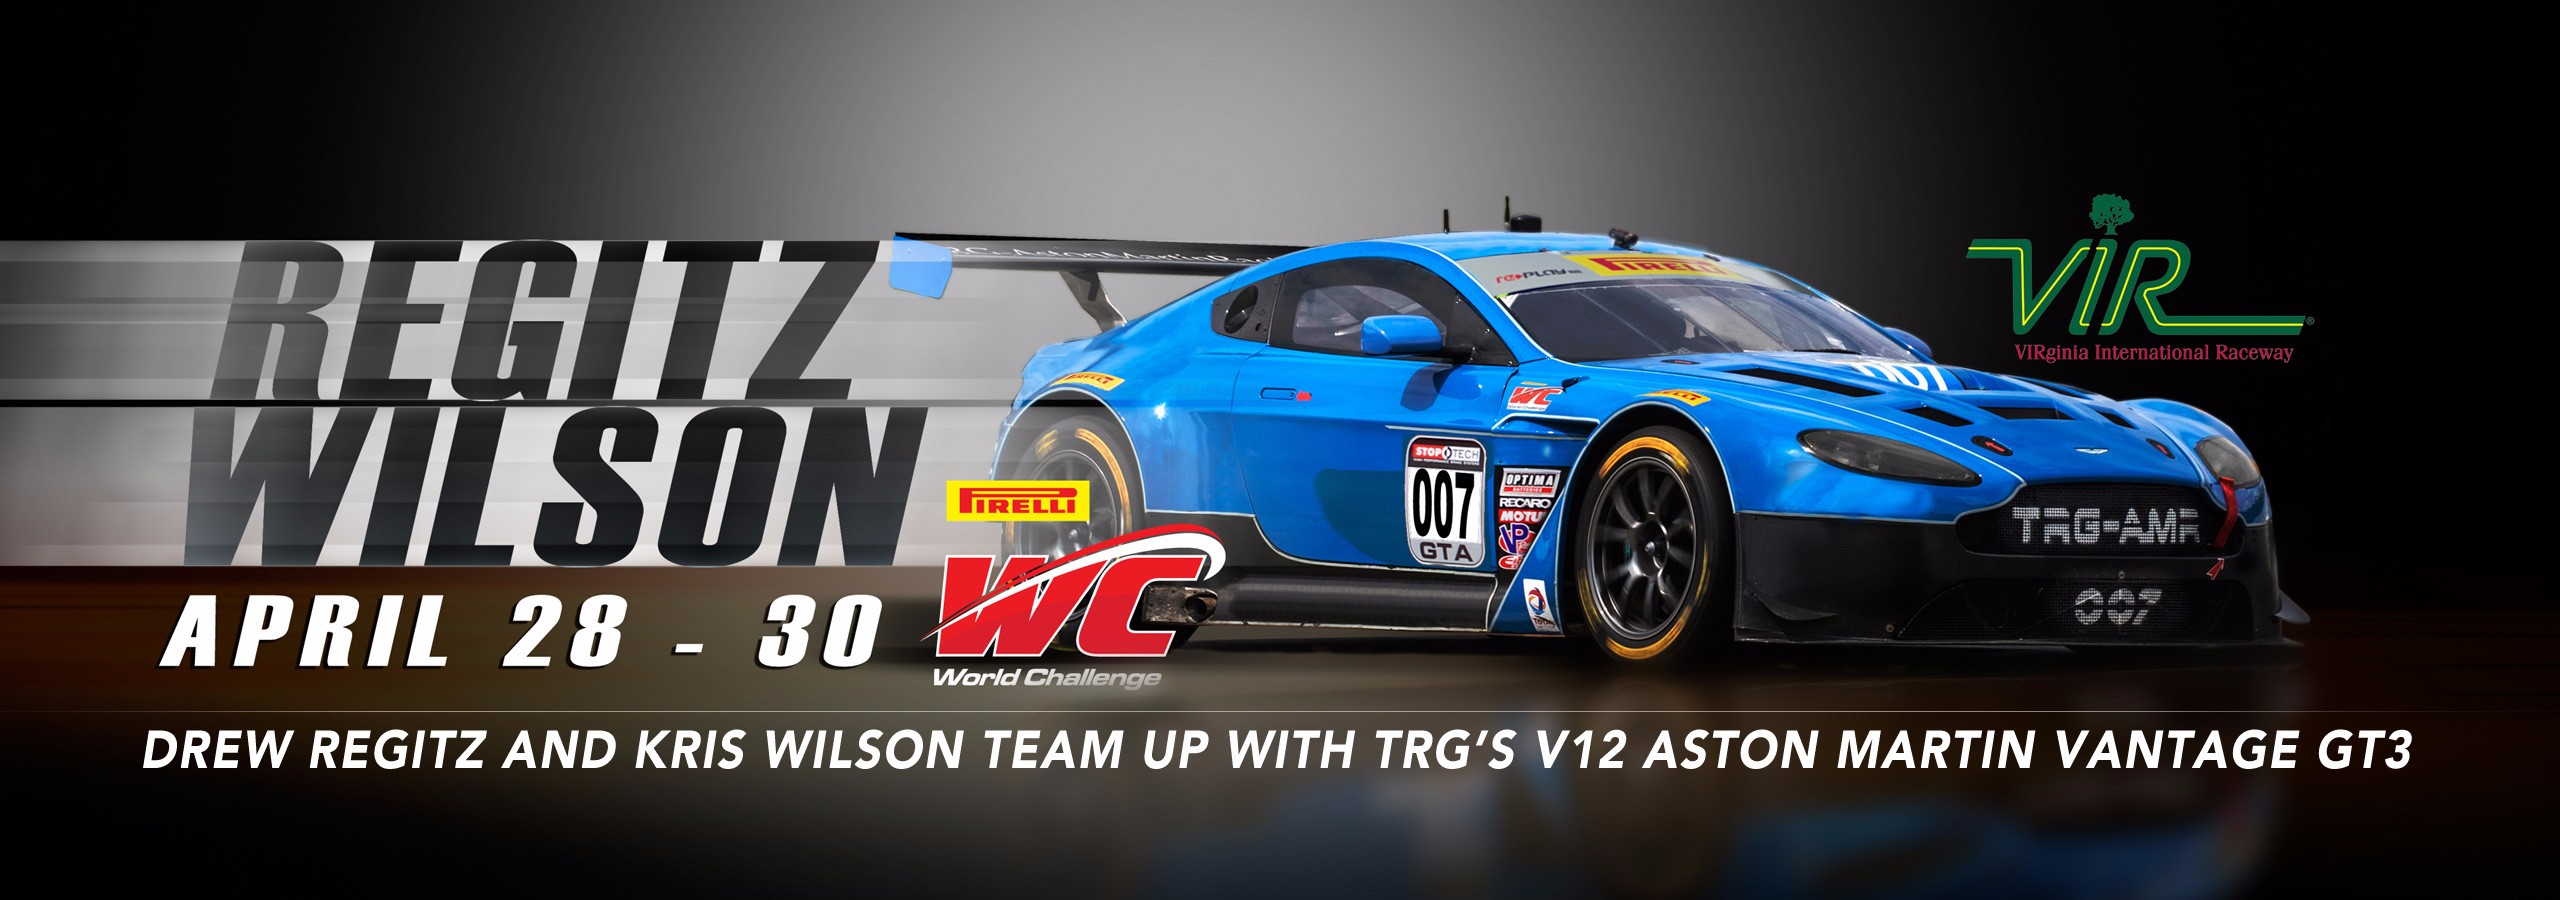 Drew Regitz and Kris Wilson Team Up with TRG's V12 Aston Martin Vantage GT3